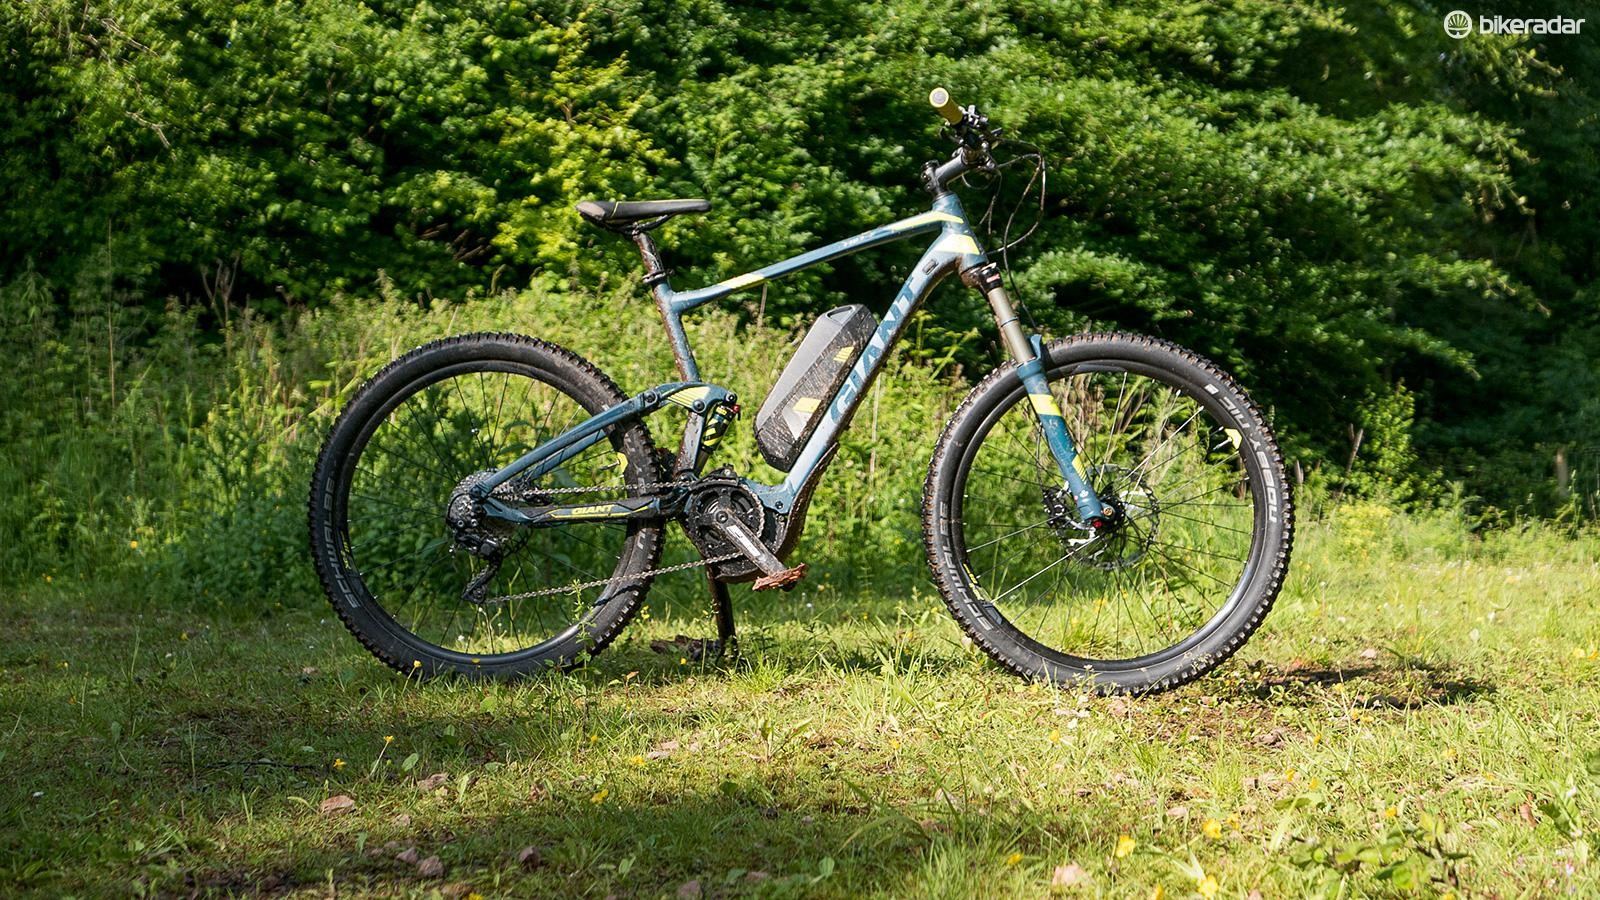 If you're after an affordable option (by e-MTB standards) then Giant's Full E+ 2 is a credible performer